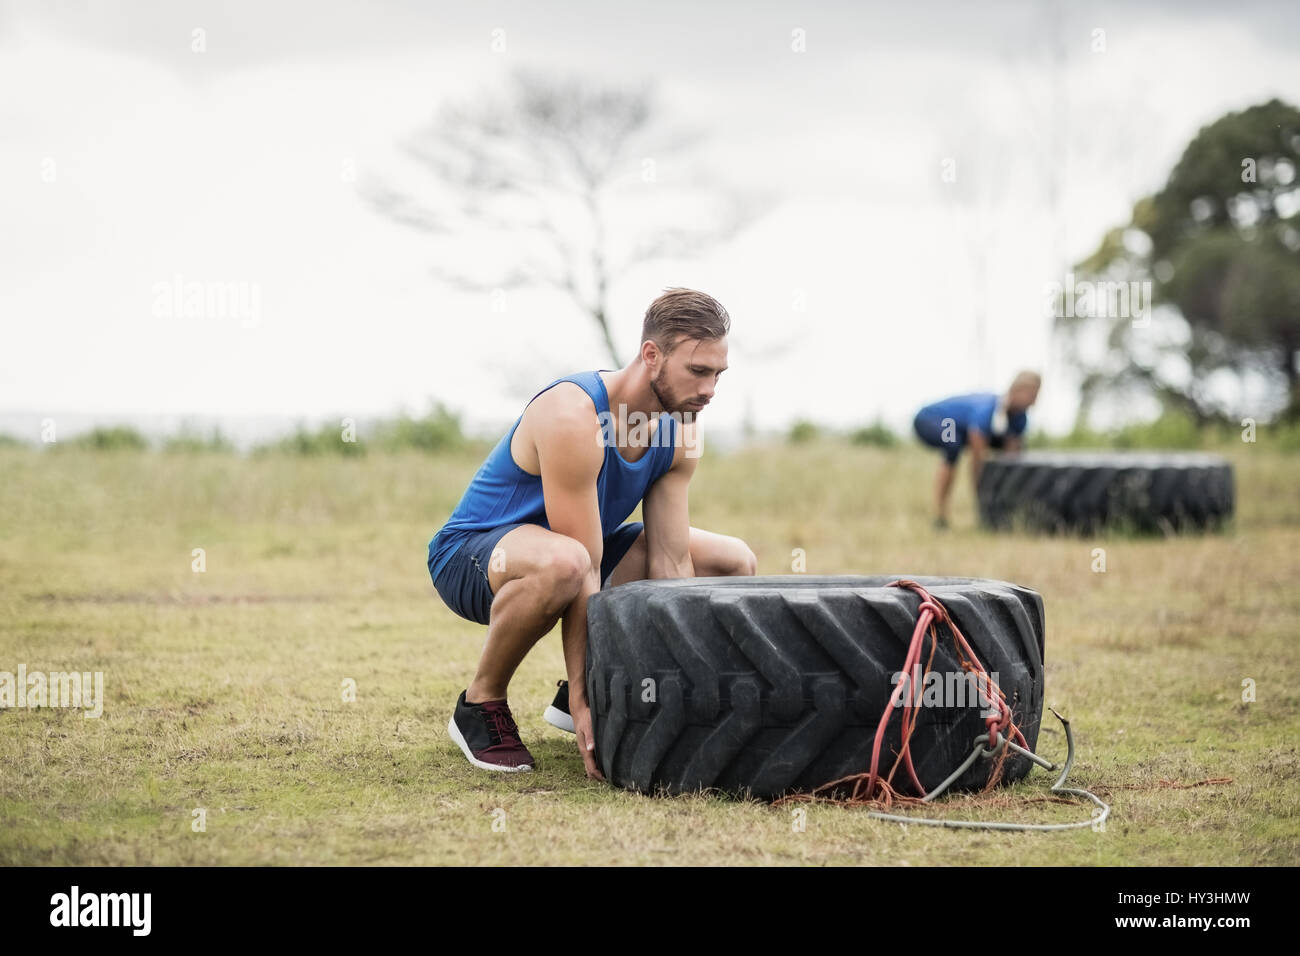 Fit woman flipping a tire during obstacle course in boot camp - Stock Image